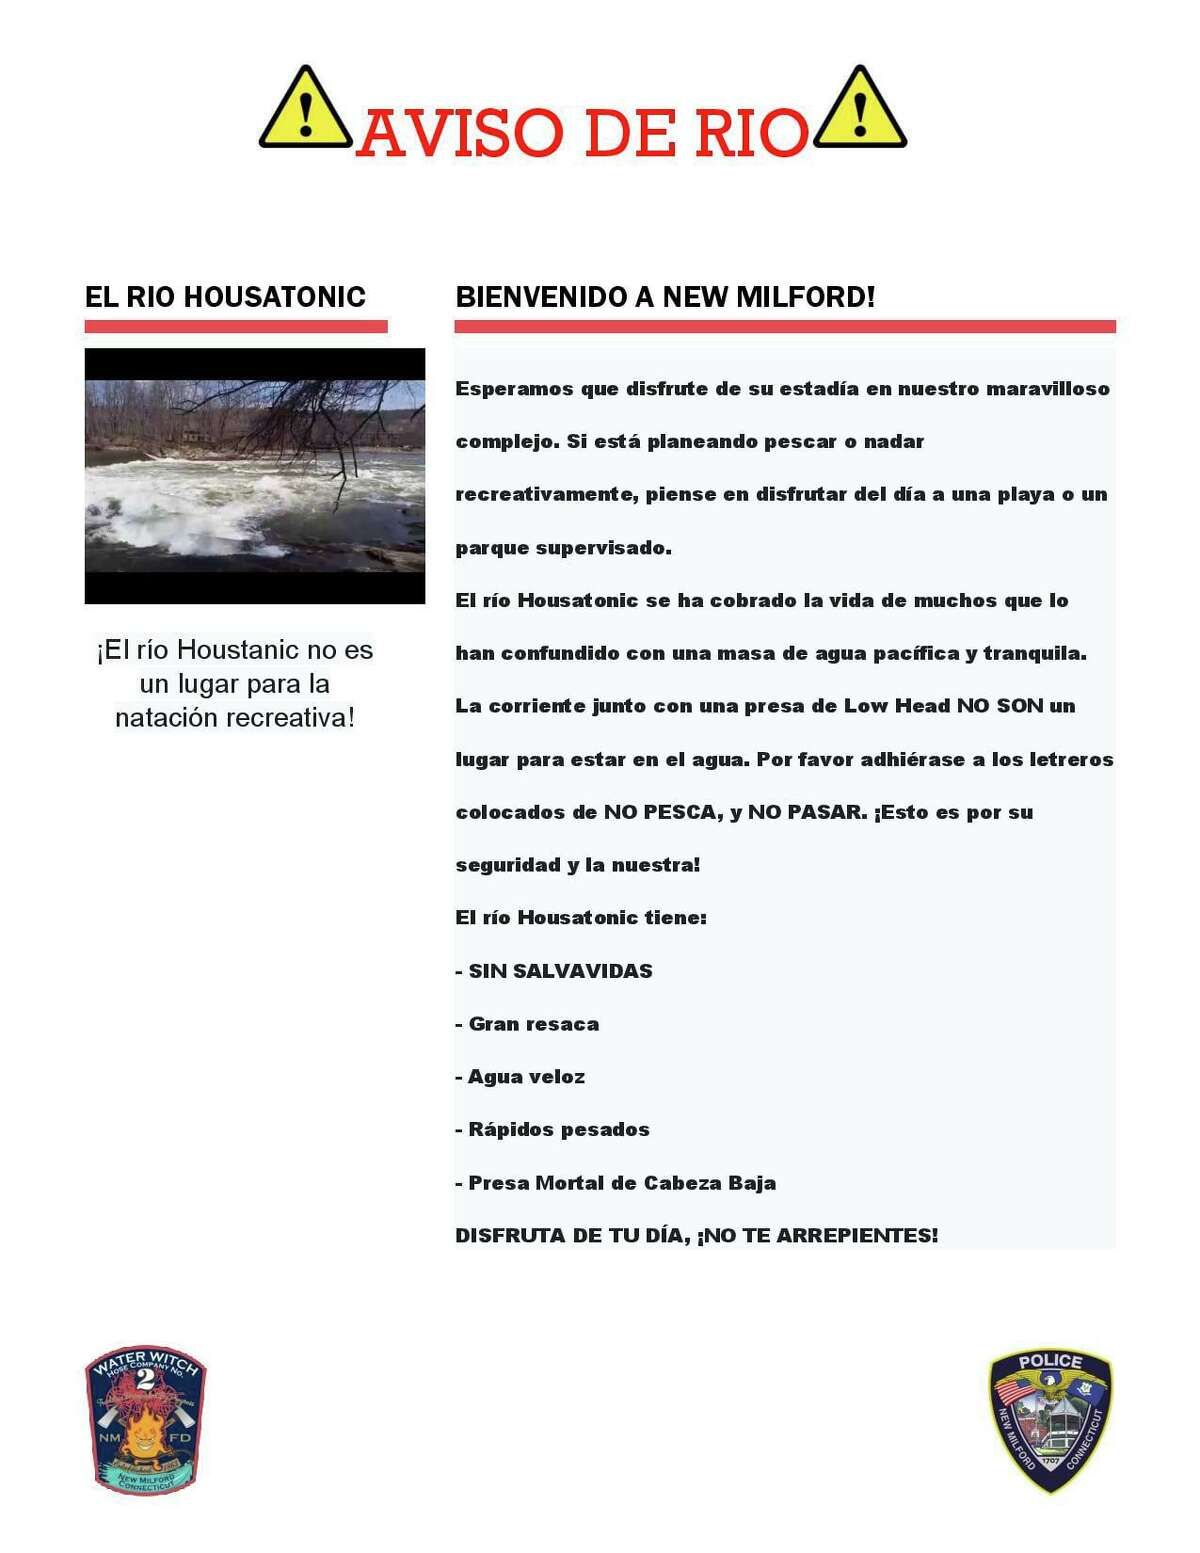 In the coming weeks, police said, residents can expect to see these posters and other public service announcements as officials work to increase awareness of how dangerous the river can be.